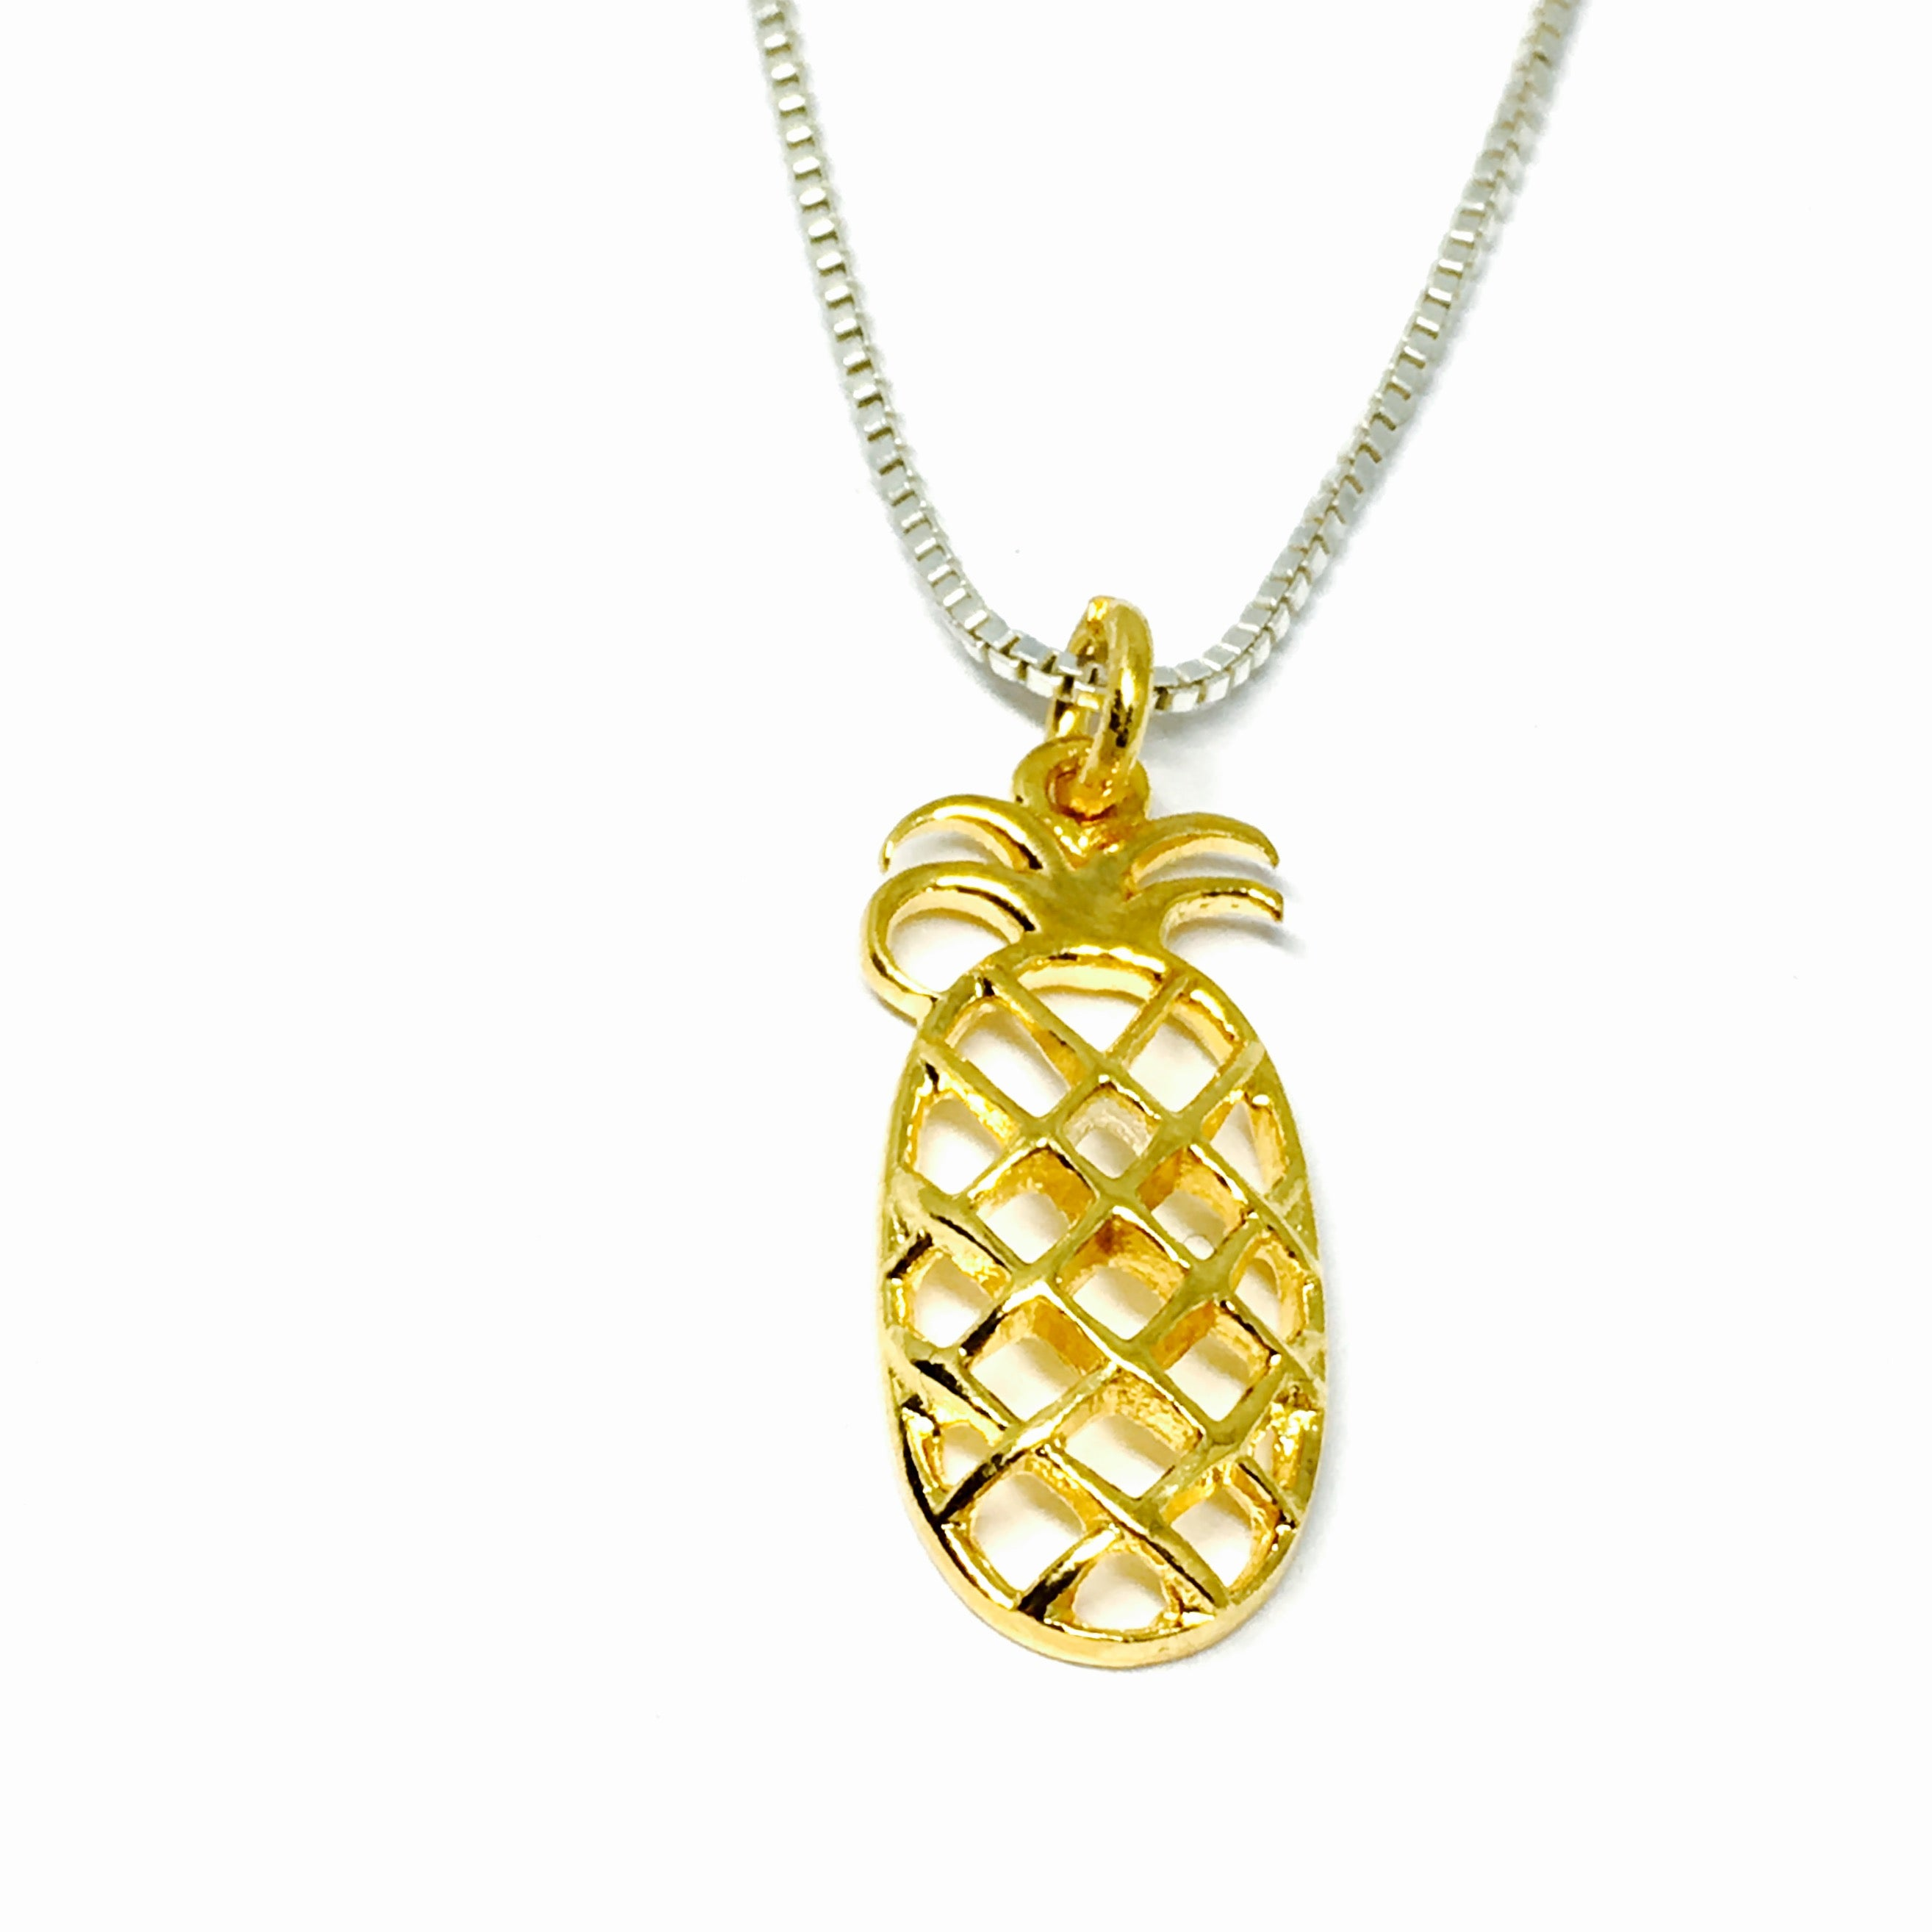 ca friends pineapple best necklace print necklaces split tone gold pendant heart